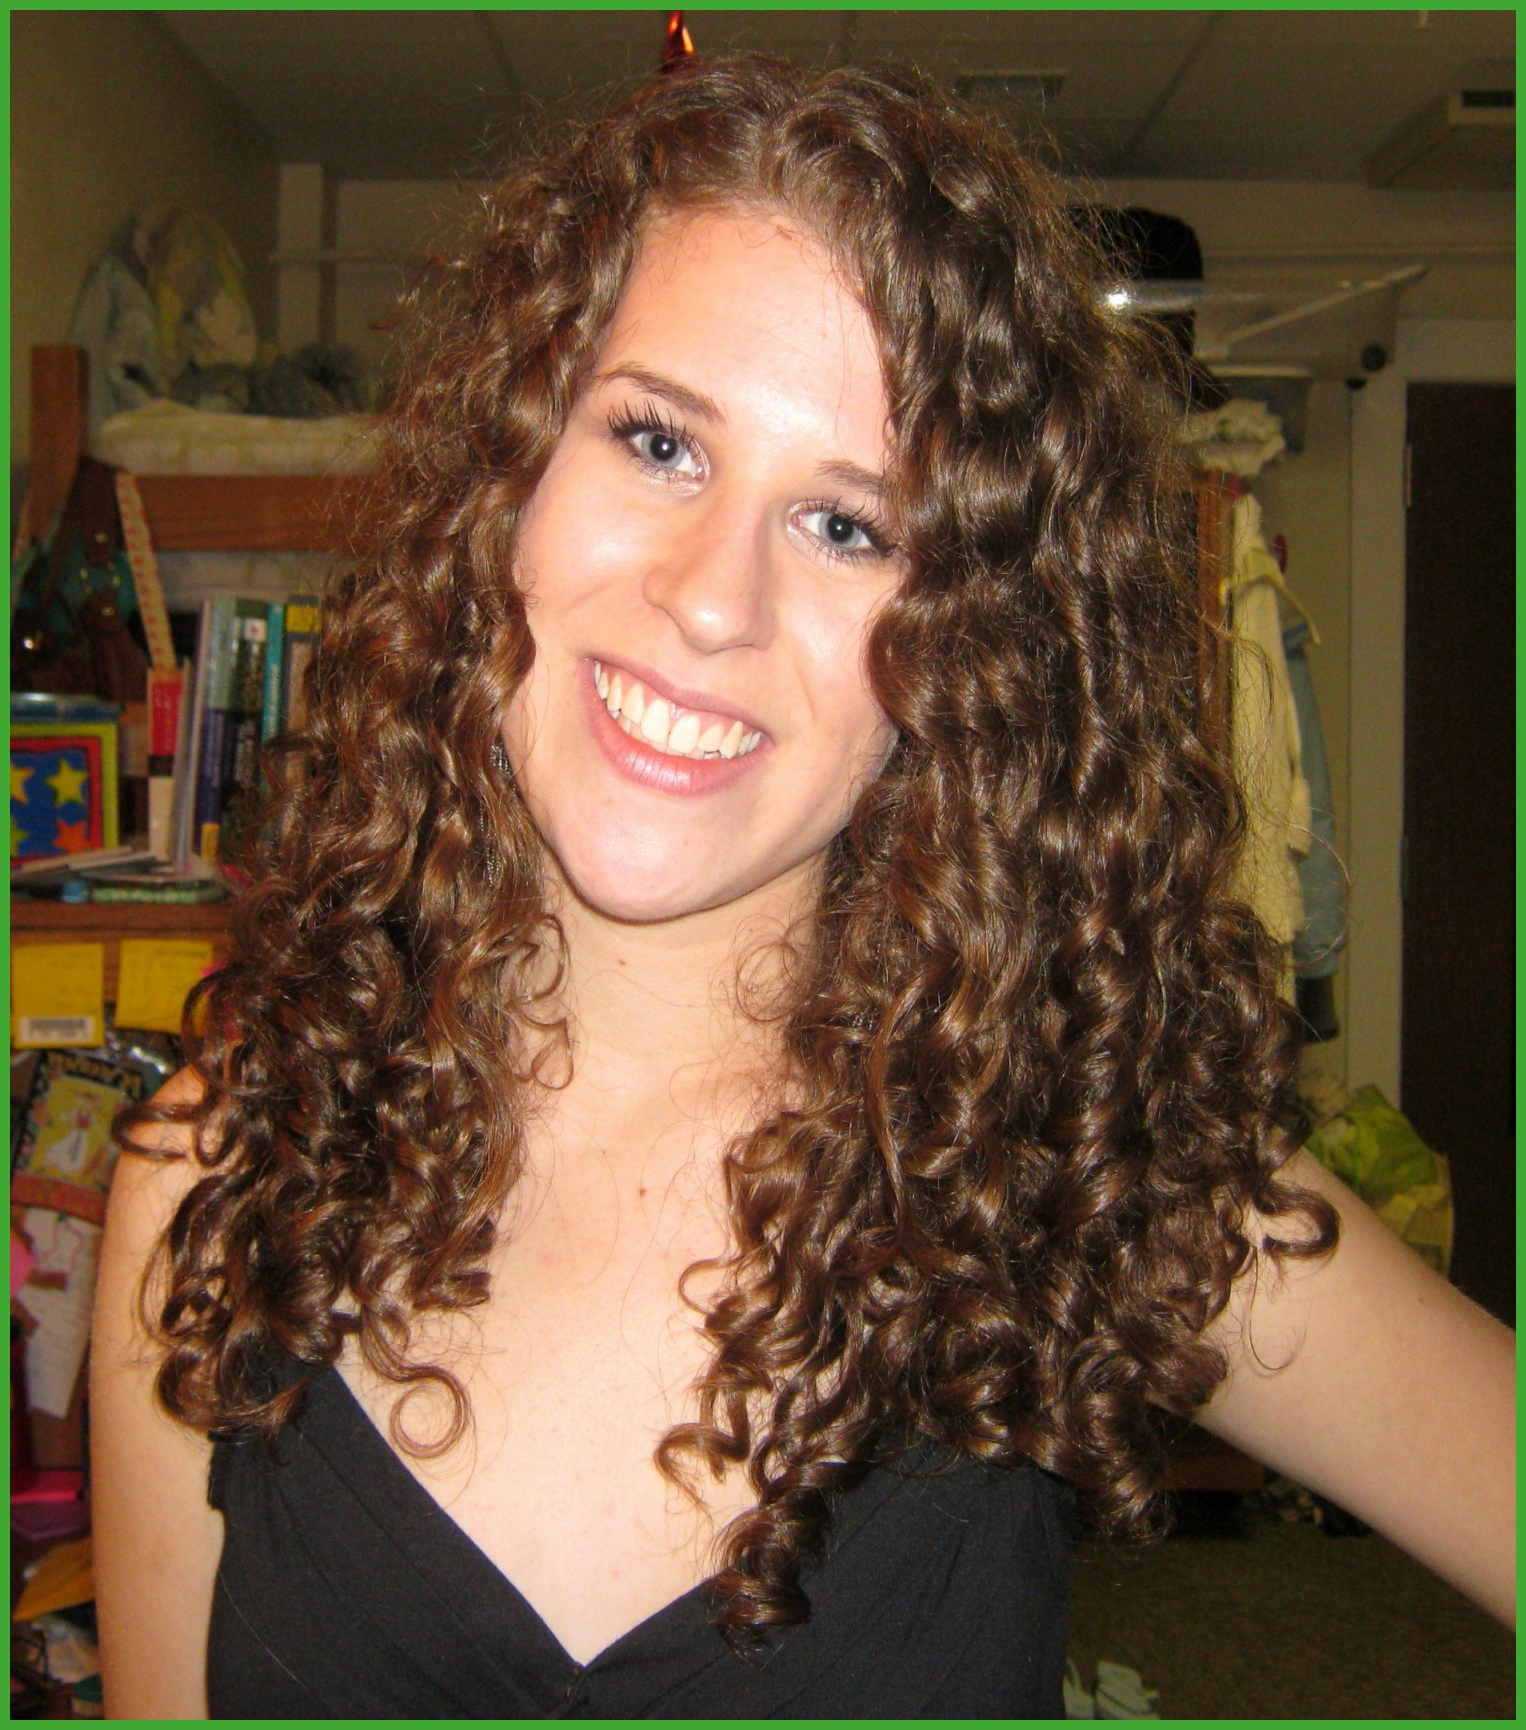 Hairstyle Of Girl Video Beautiful Lovely Cute Hairstyles For Medium Pertaining To Cute Hairstyles For Girls With Short Hair (View 21 of 25)